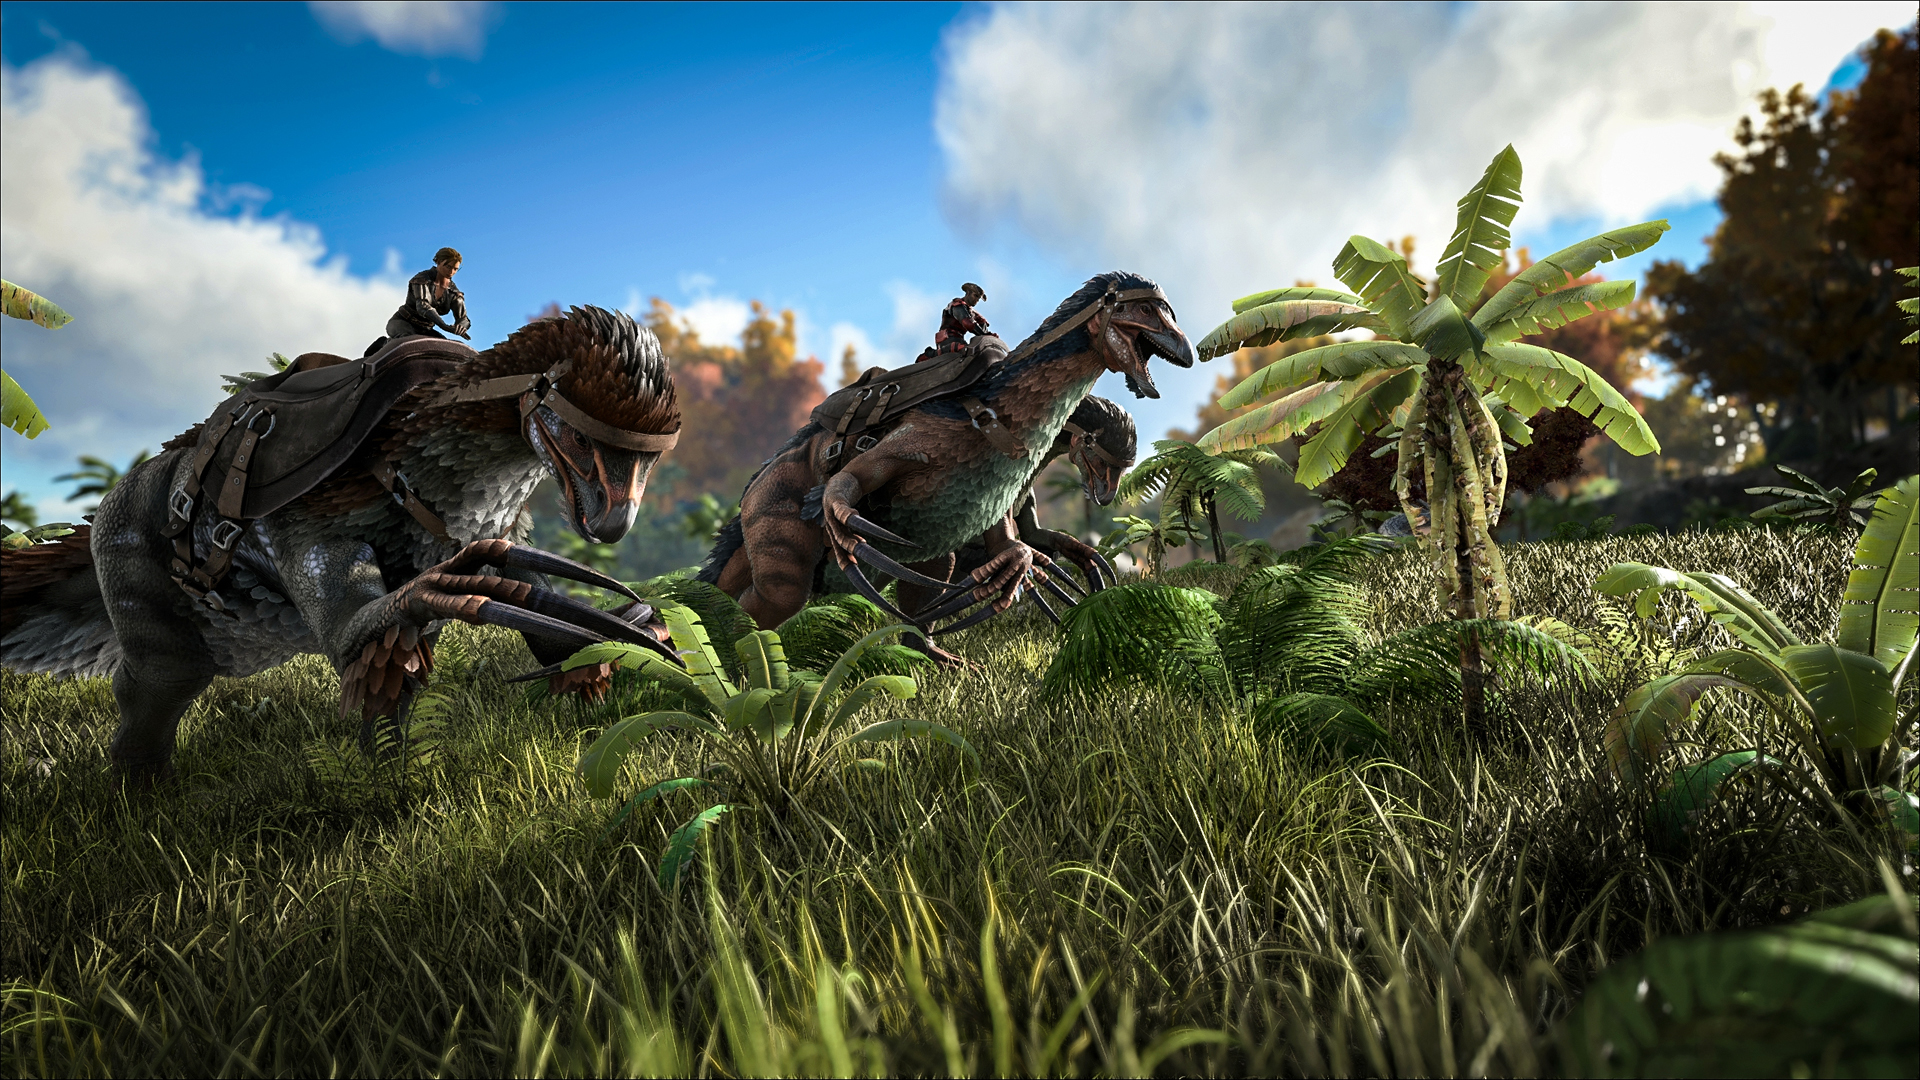 Claim ARK: Survival Evolved for free